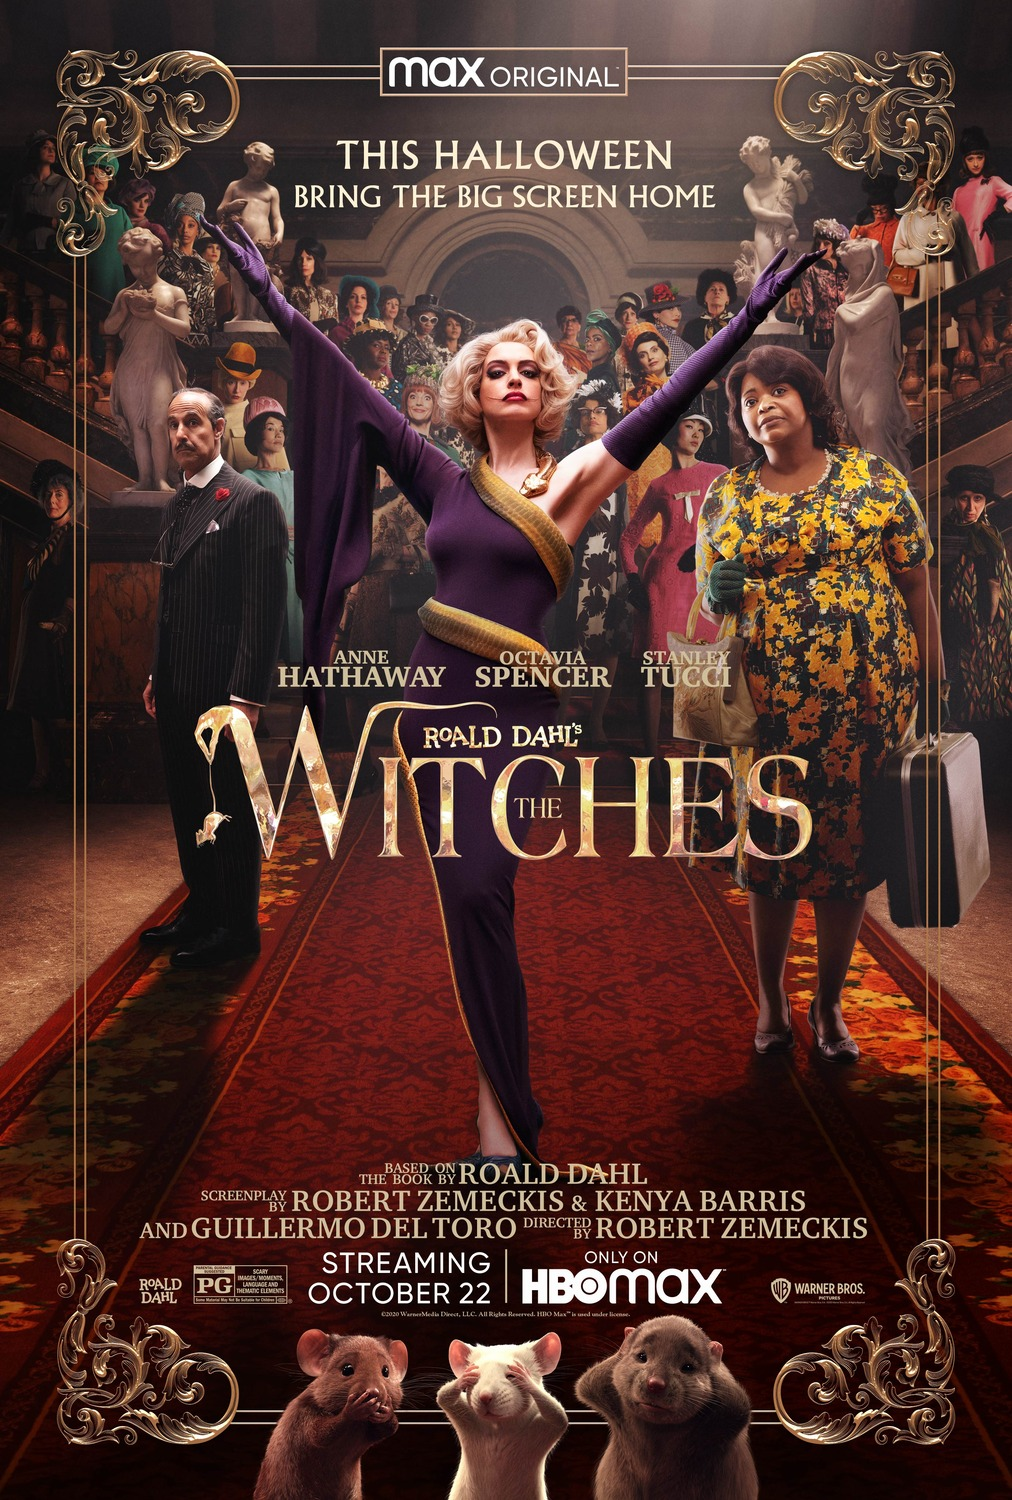 The Witches (2020 film)